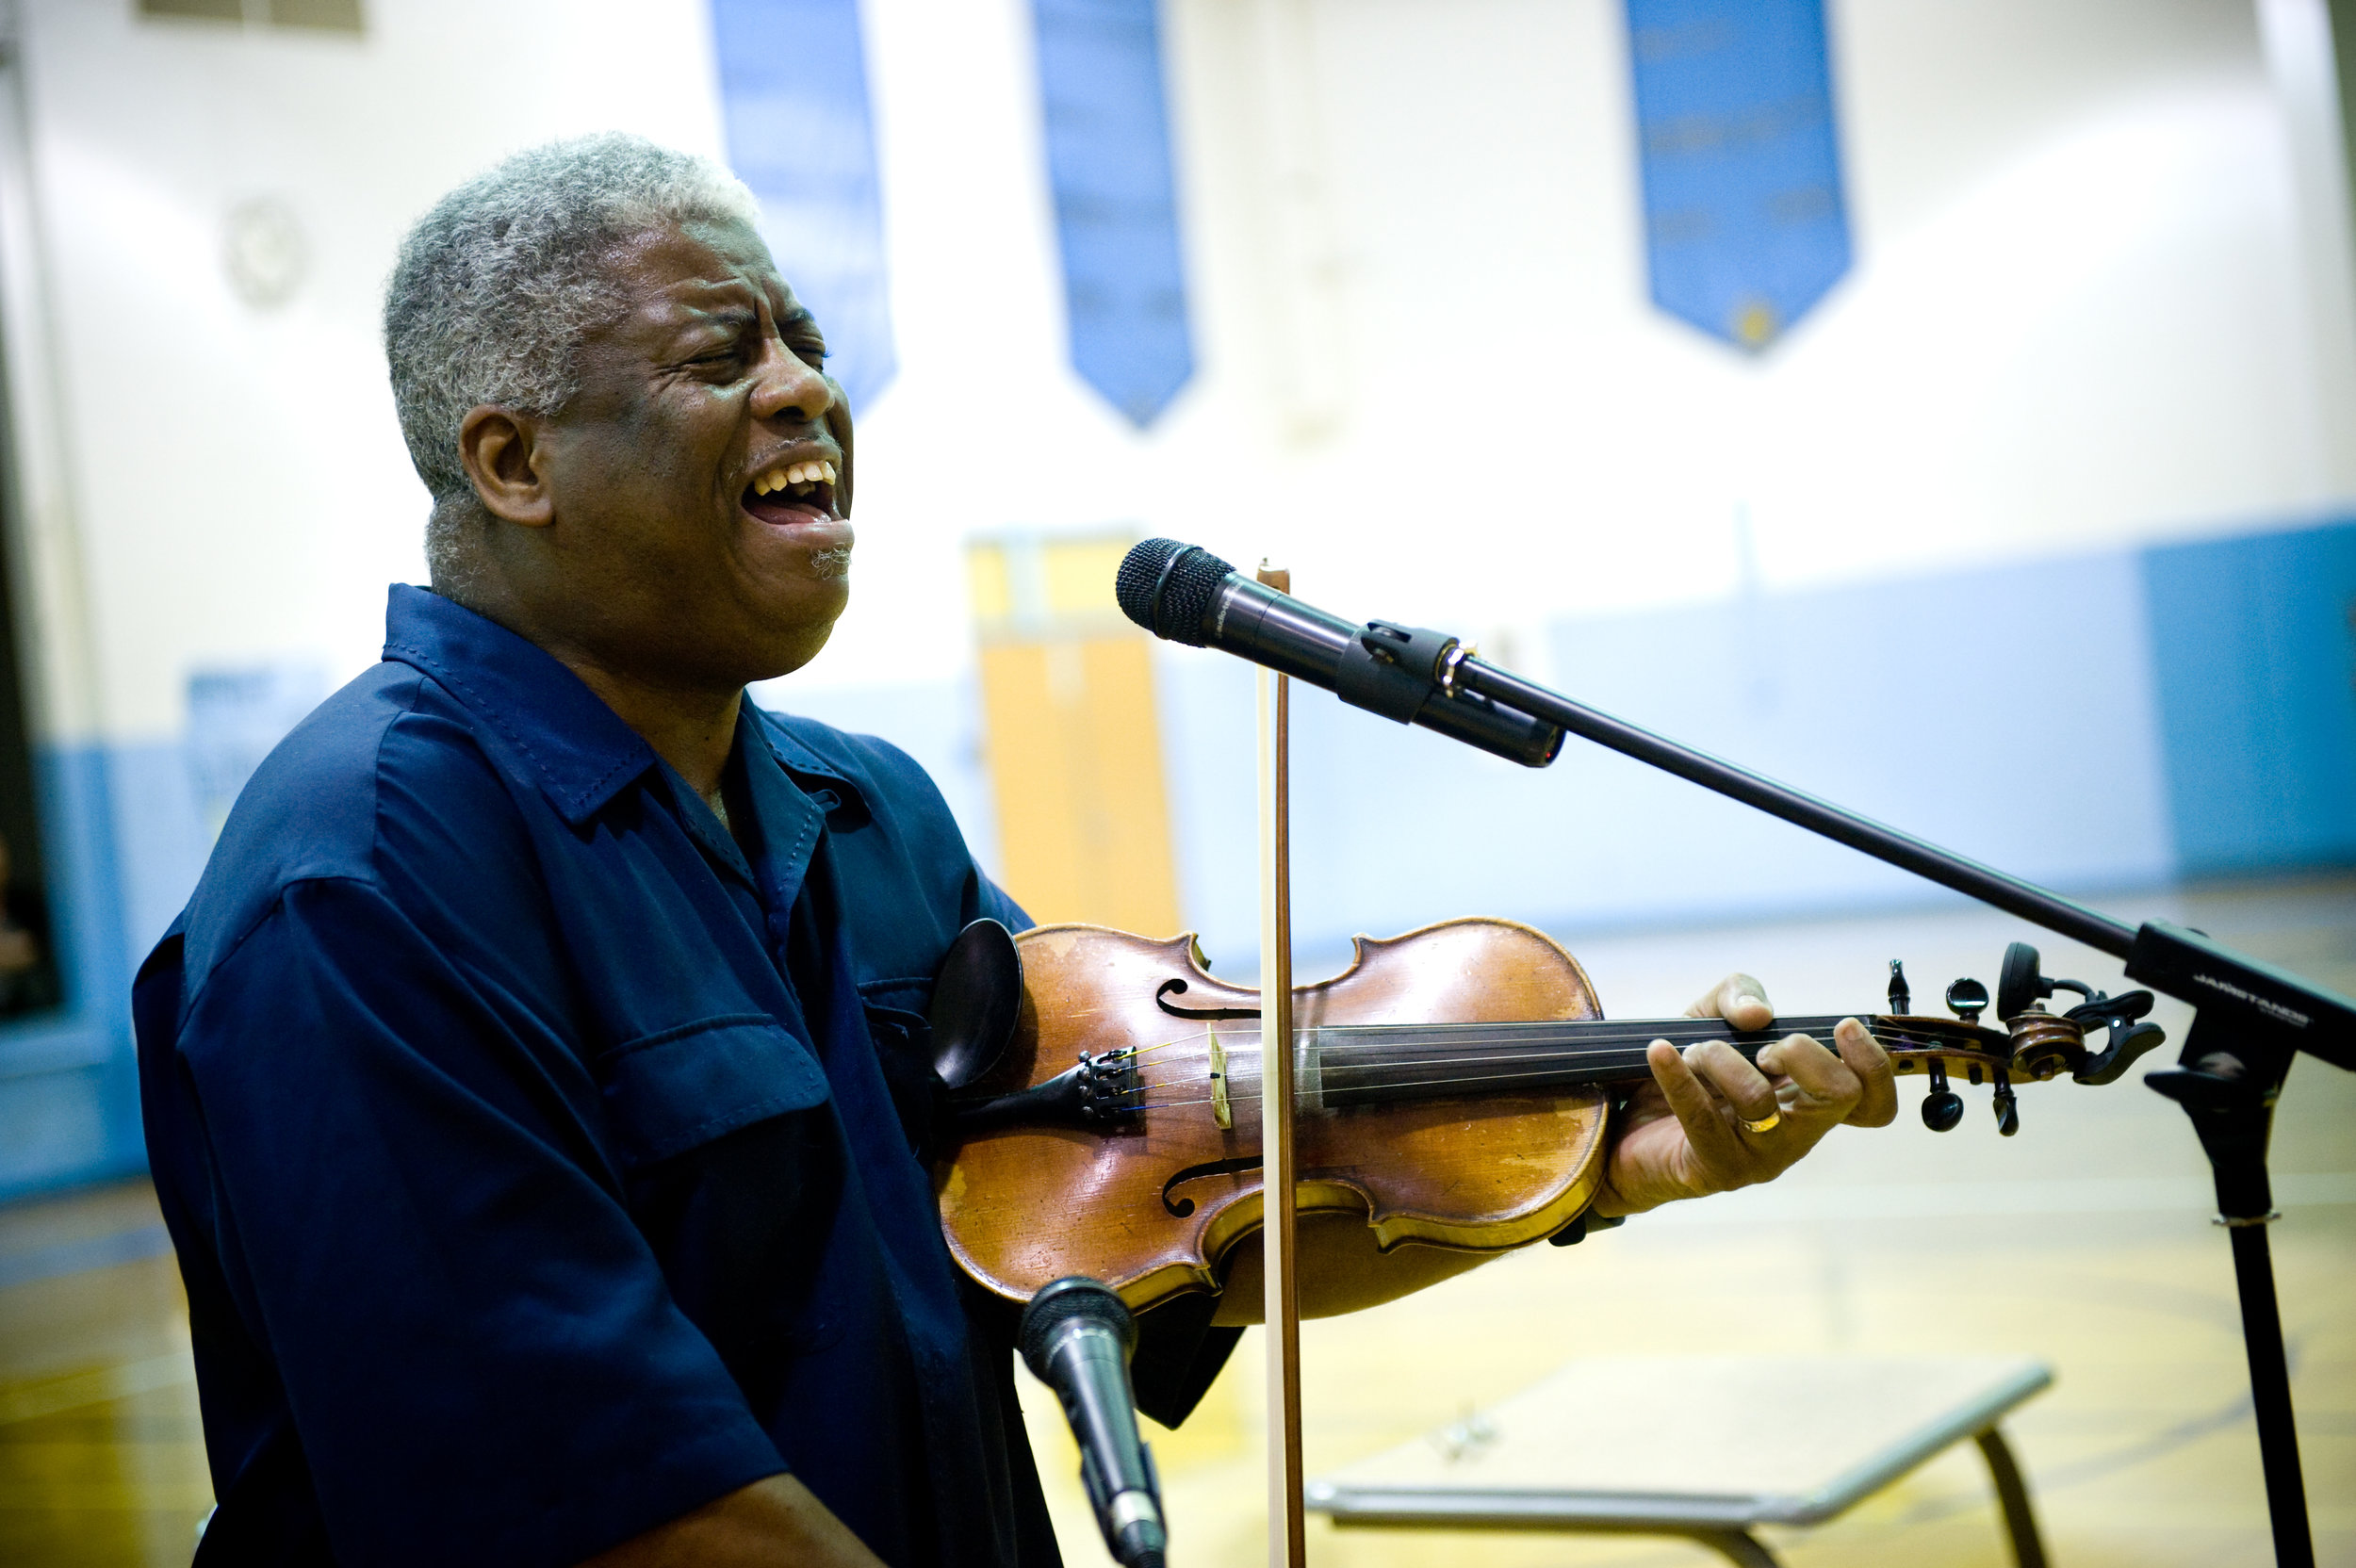 The Rev. Robert Jones is presenting the history of blues to local middle and high schools, this week. On Friday at 7pm, he will be giving a live performance, open to the public, at Marietta High School. Photo by  Michelle Waters